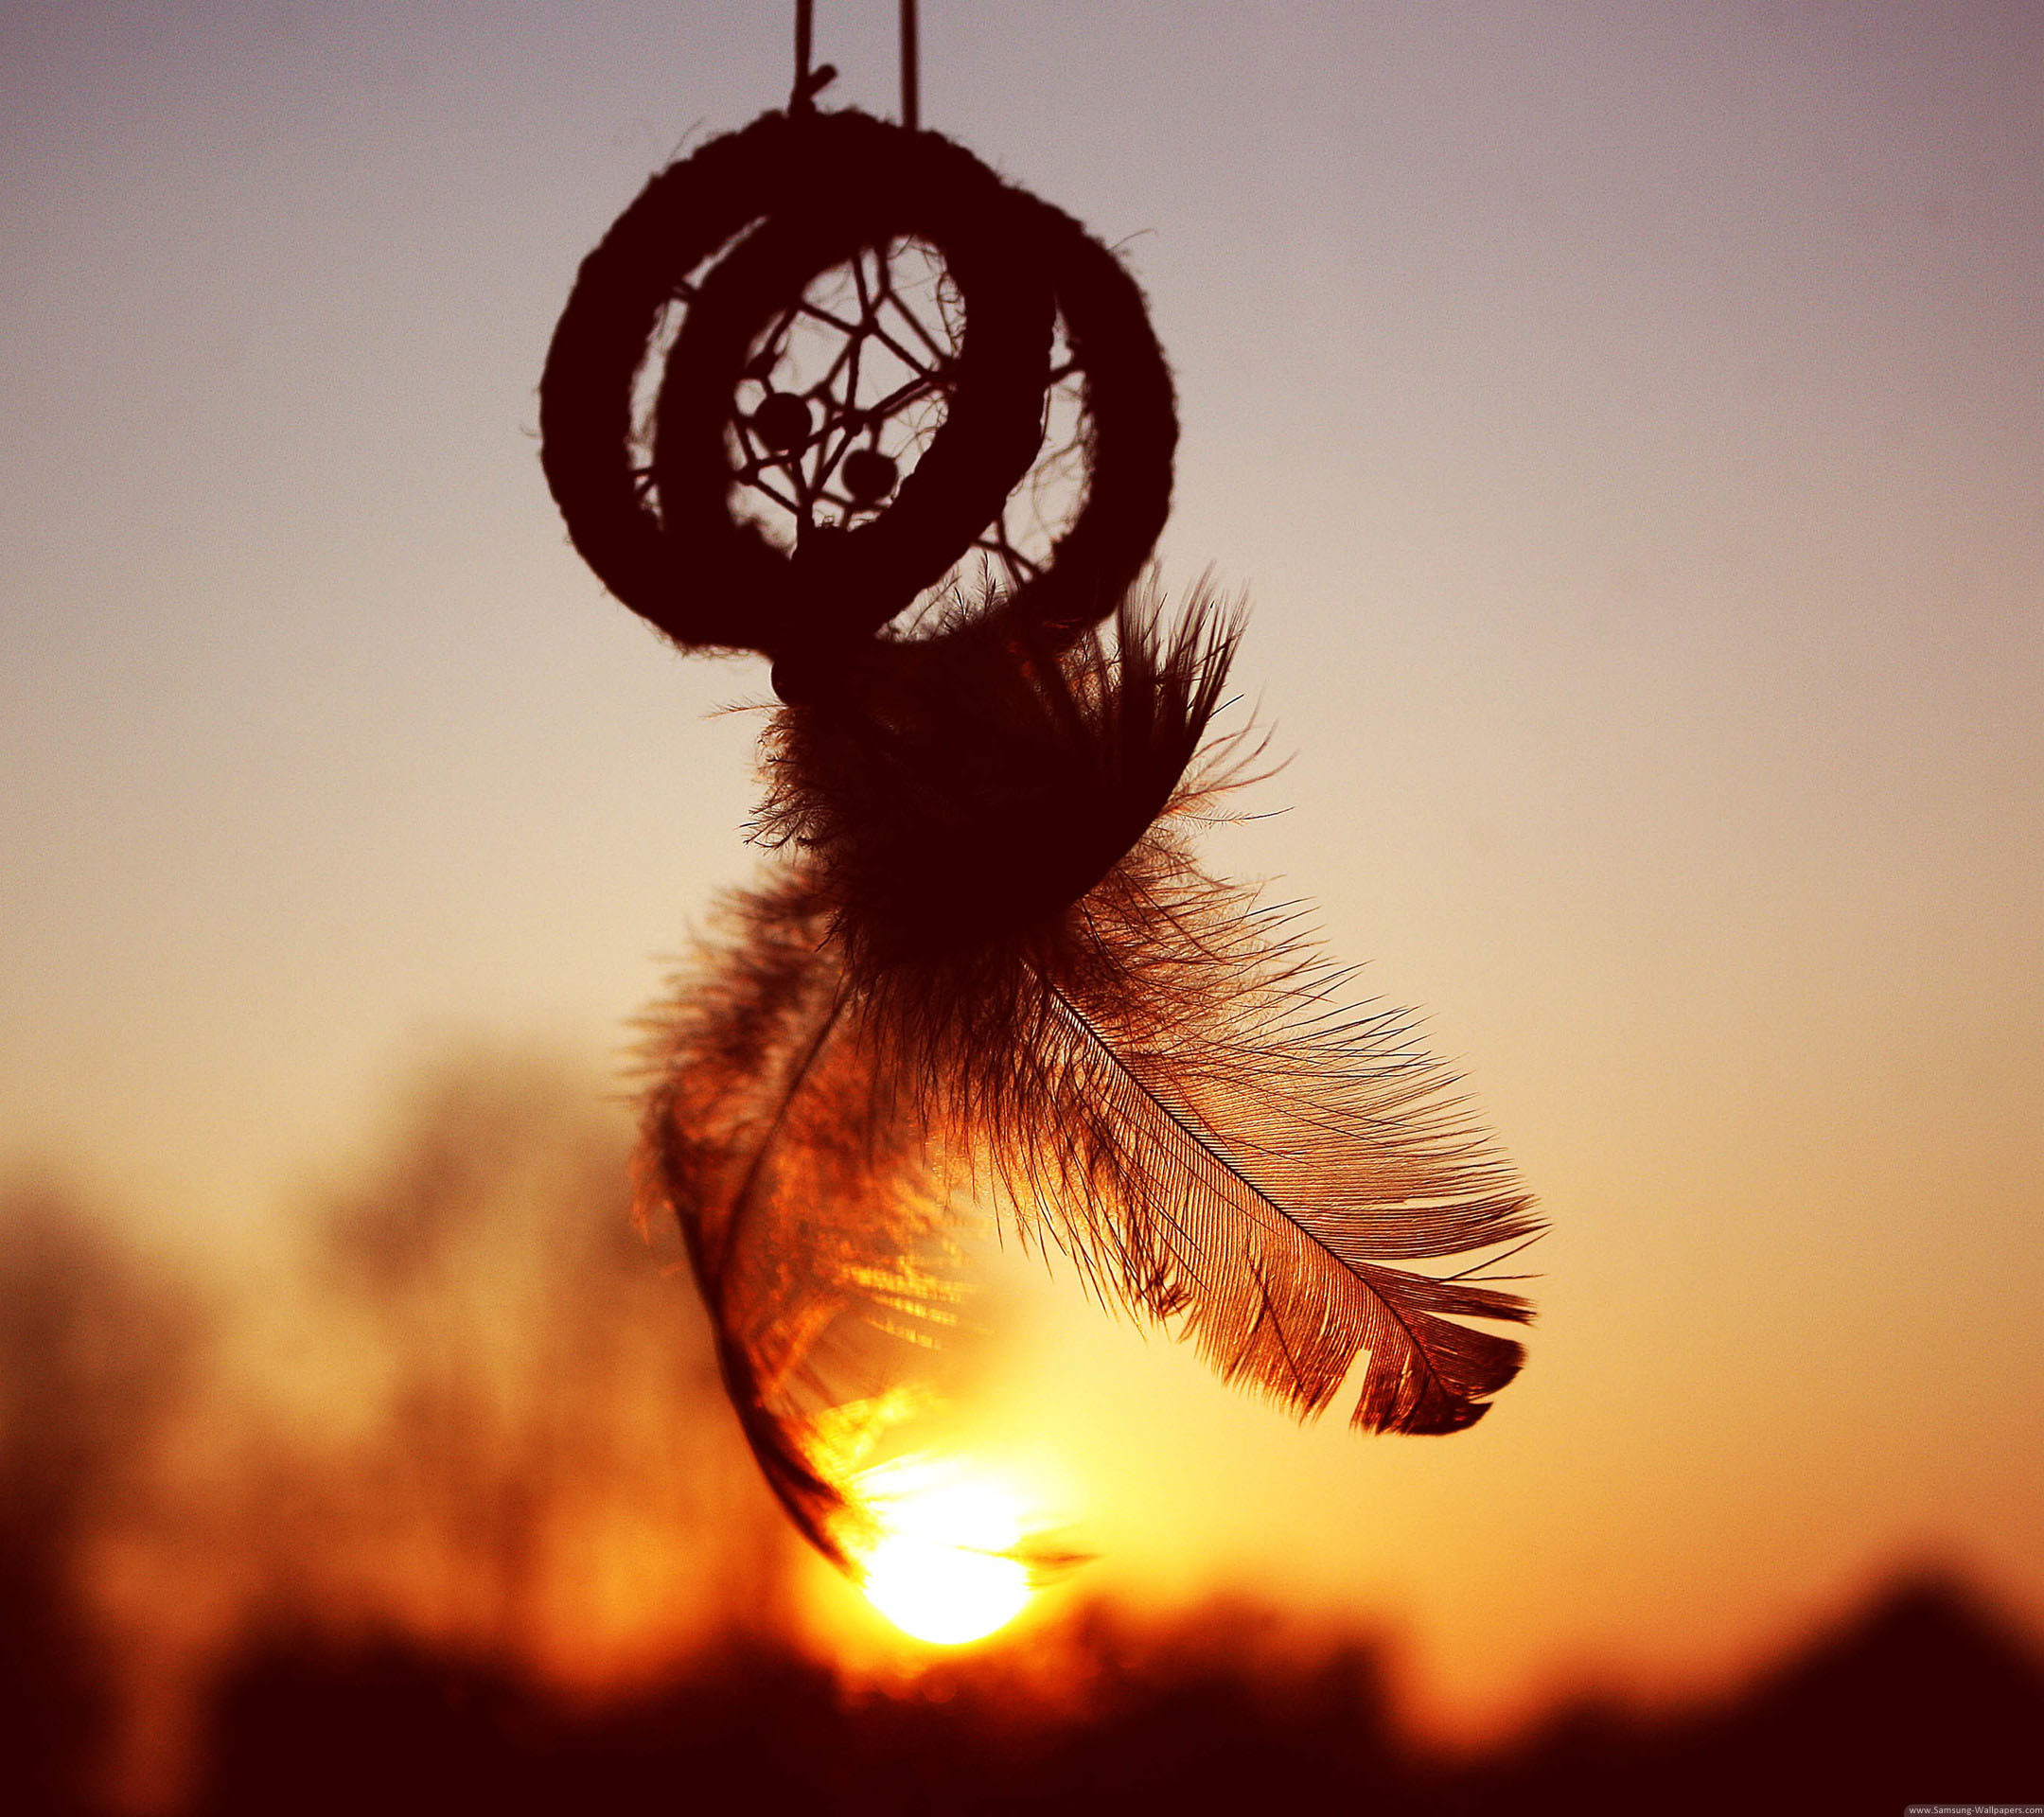 Girly Lock Screen Iphone Wallpaper: Dream Catcher IPhone Wallpapers (76+ Images